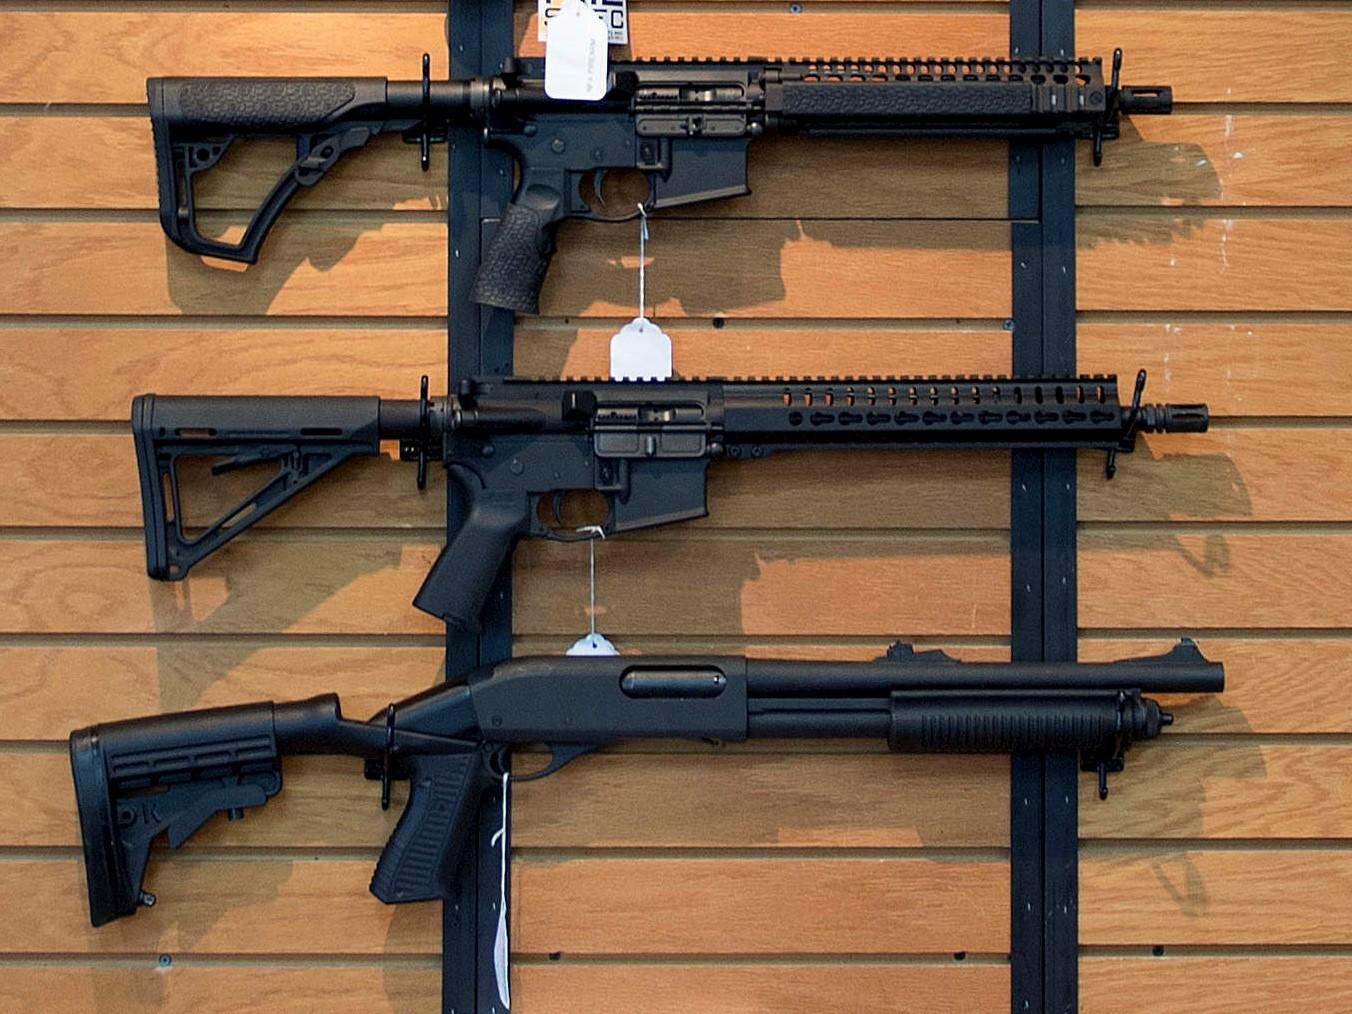 guns - latest news, breaking stories and comment - The